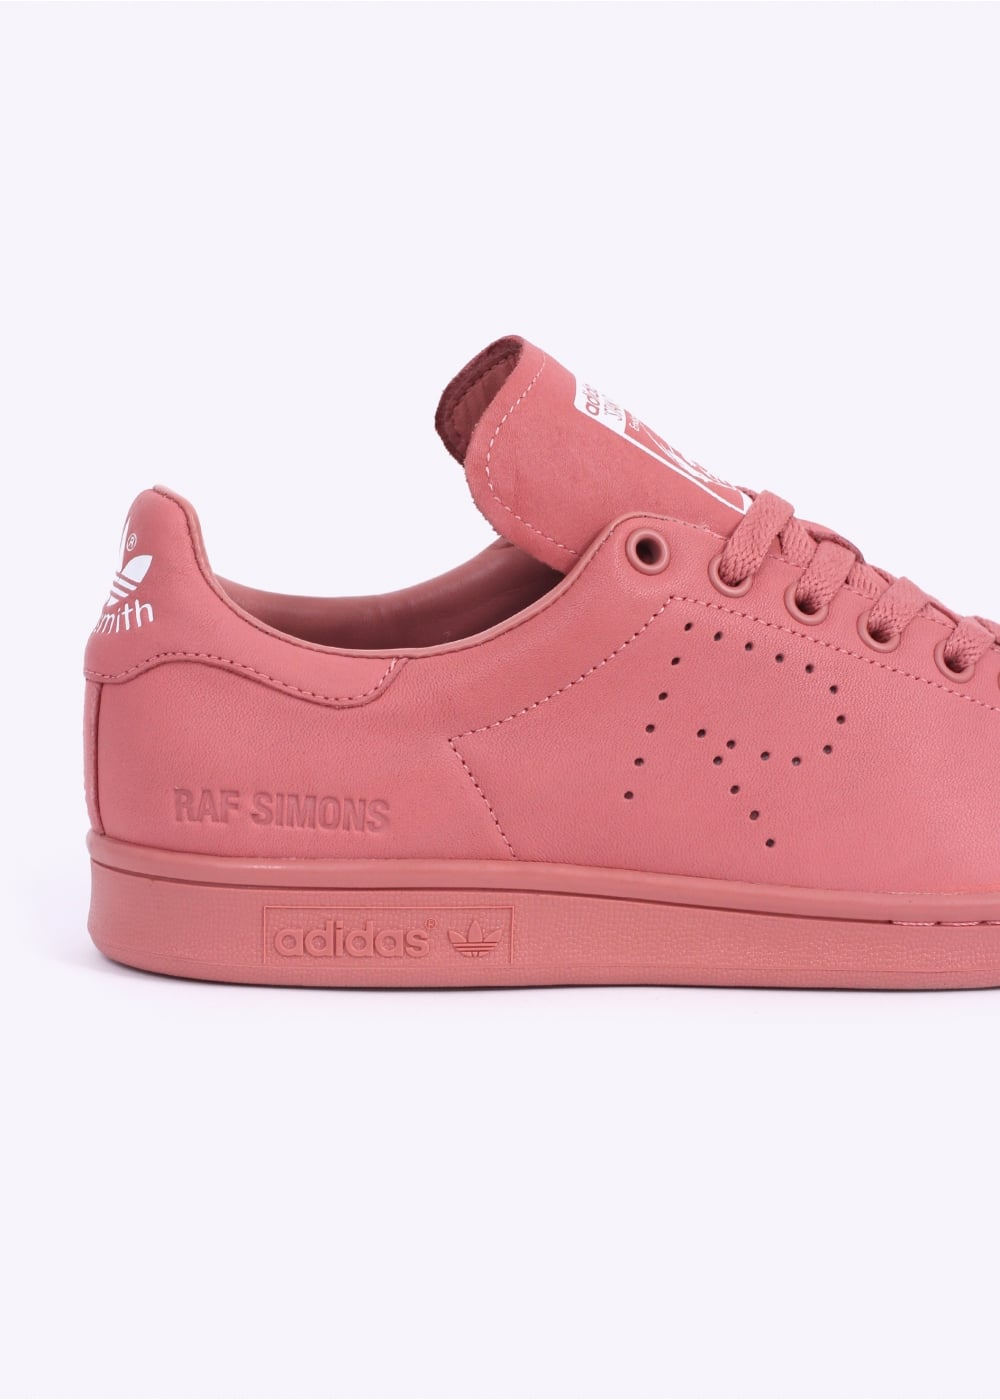 separation shoes 268af b6aca adidas Originals x Raf Simons Stan Smith - Ash Pink